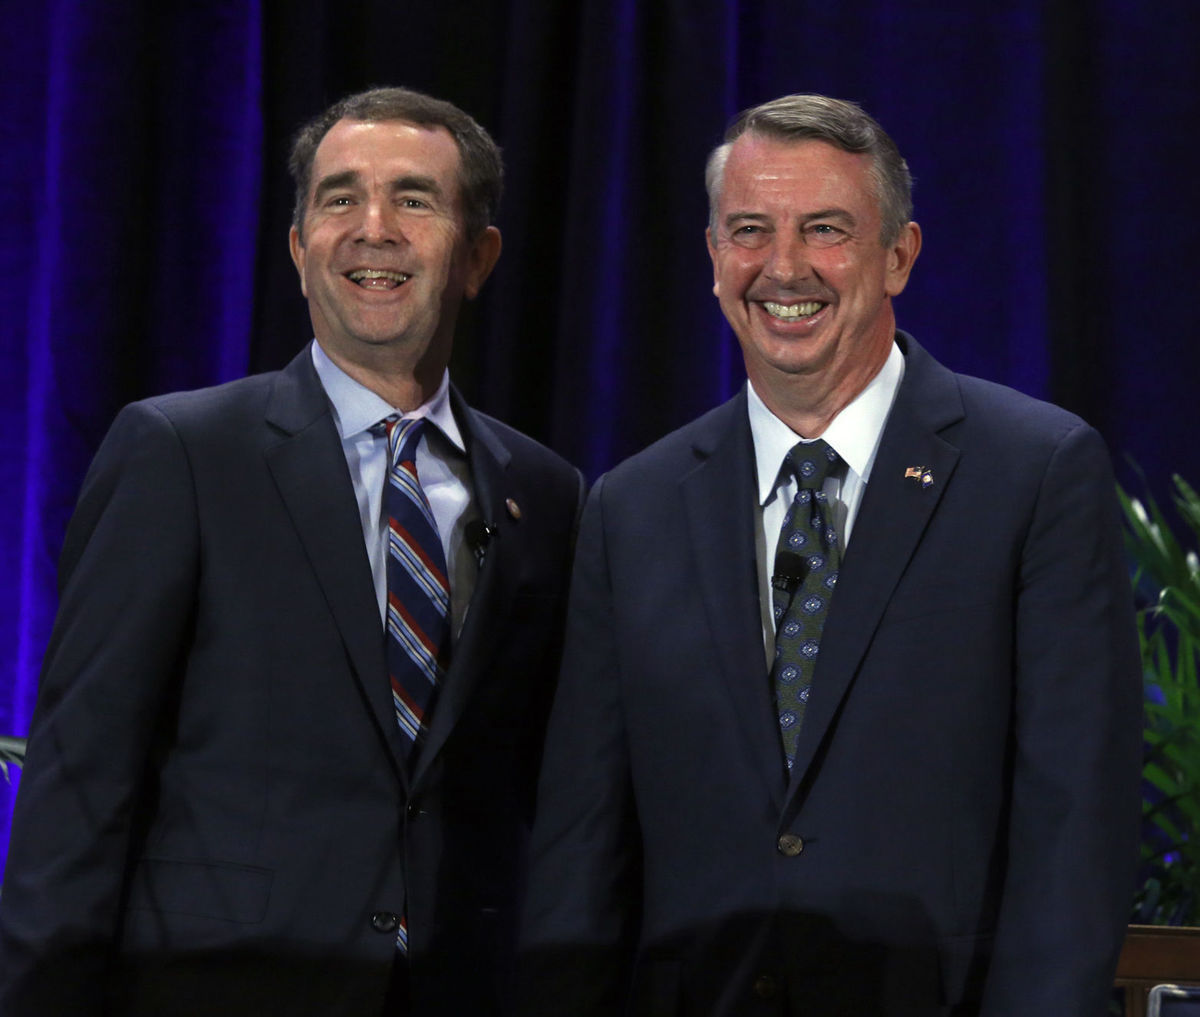 Northam Leads Gillespie, 49%-42%, in Tracking Poll